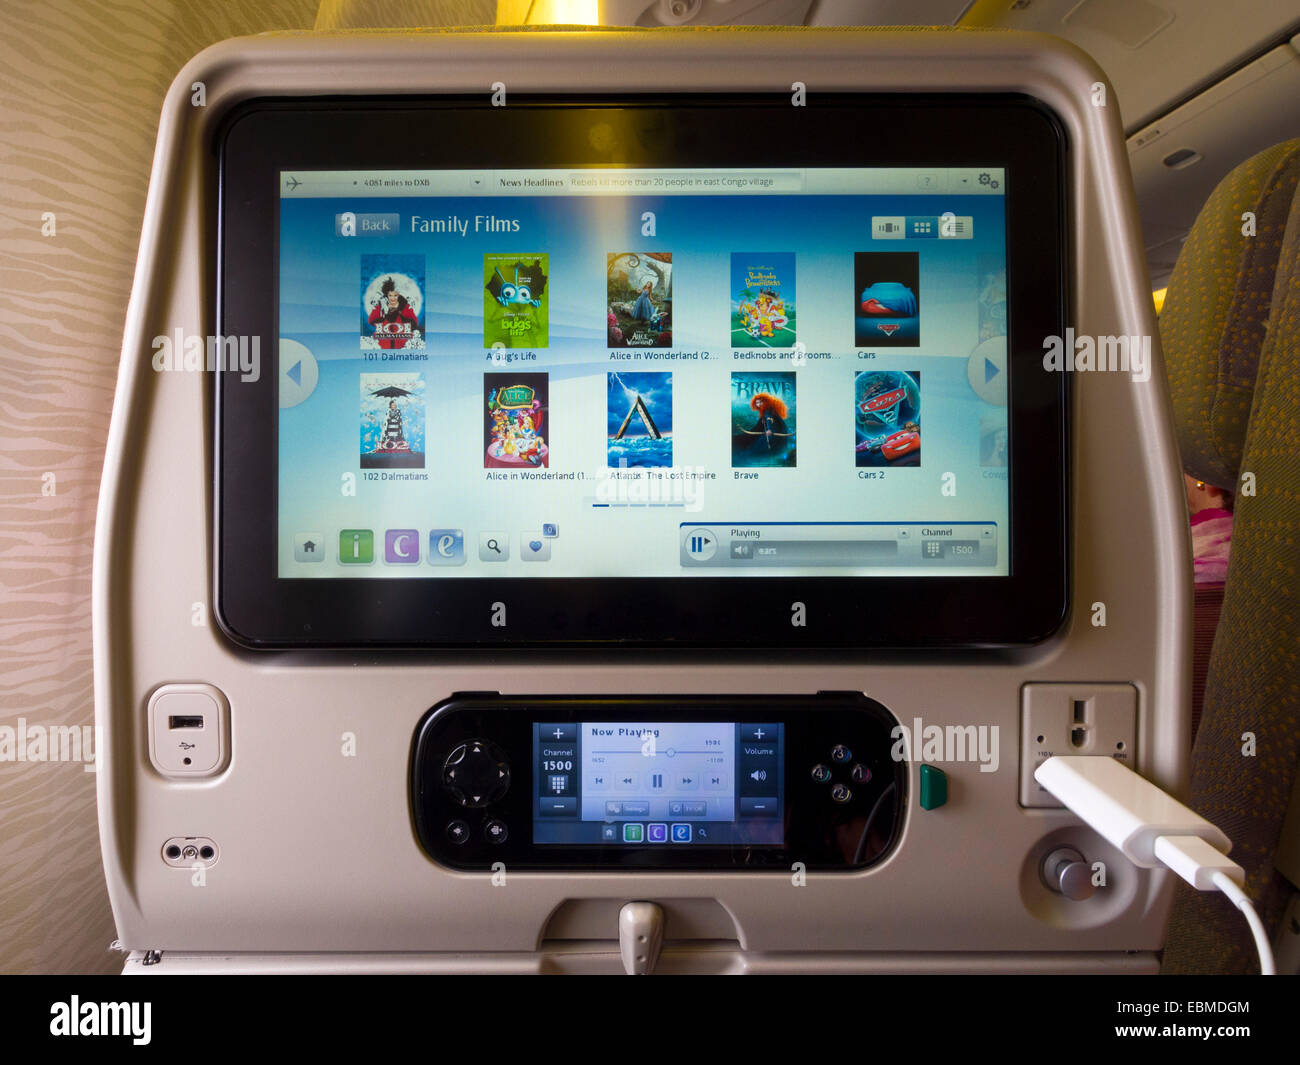 remote airplanes for kids with Stock Photo In Flight Entertainment System Screen Inside The Cabin Of A Emirates 76052388 on Hunger Games Movie Quotes Backgrounds furthermore Gis Remote Sensing likewise Hunger Games Movie Quotes Backgrounds as well Best Christmas Gifts For 6 Year Old Boys in addition Saturday Blessings Quotes.